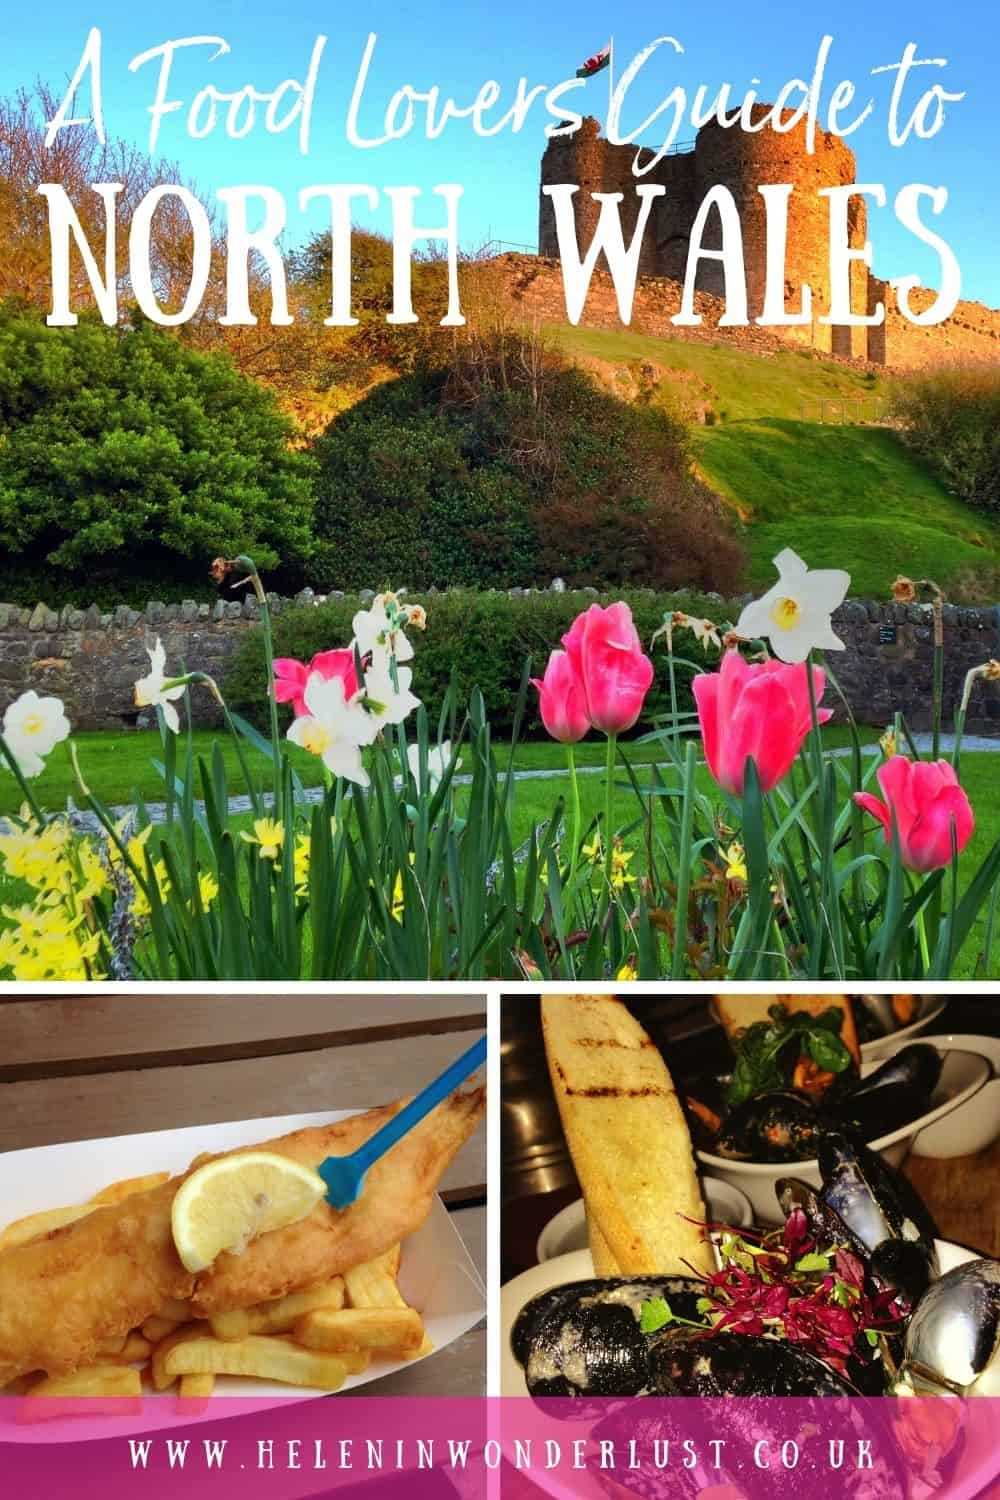 The Food Lovers Guide to North Wales